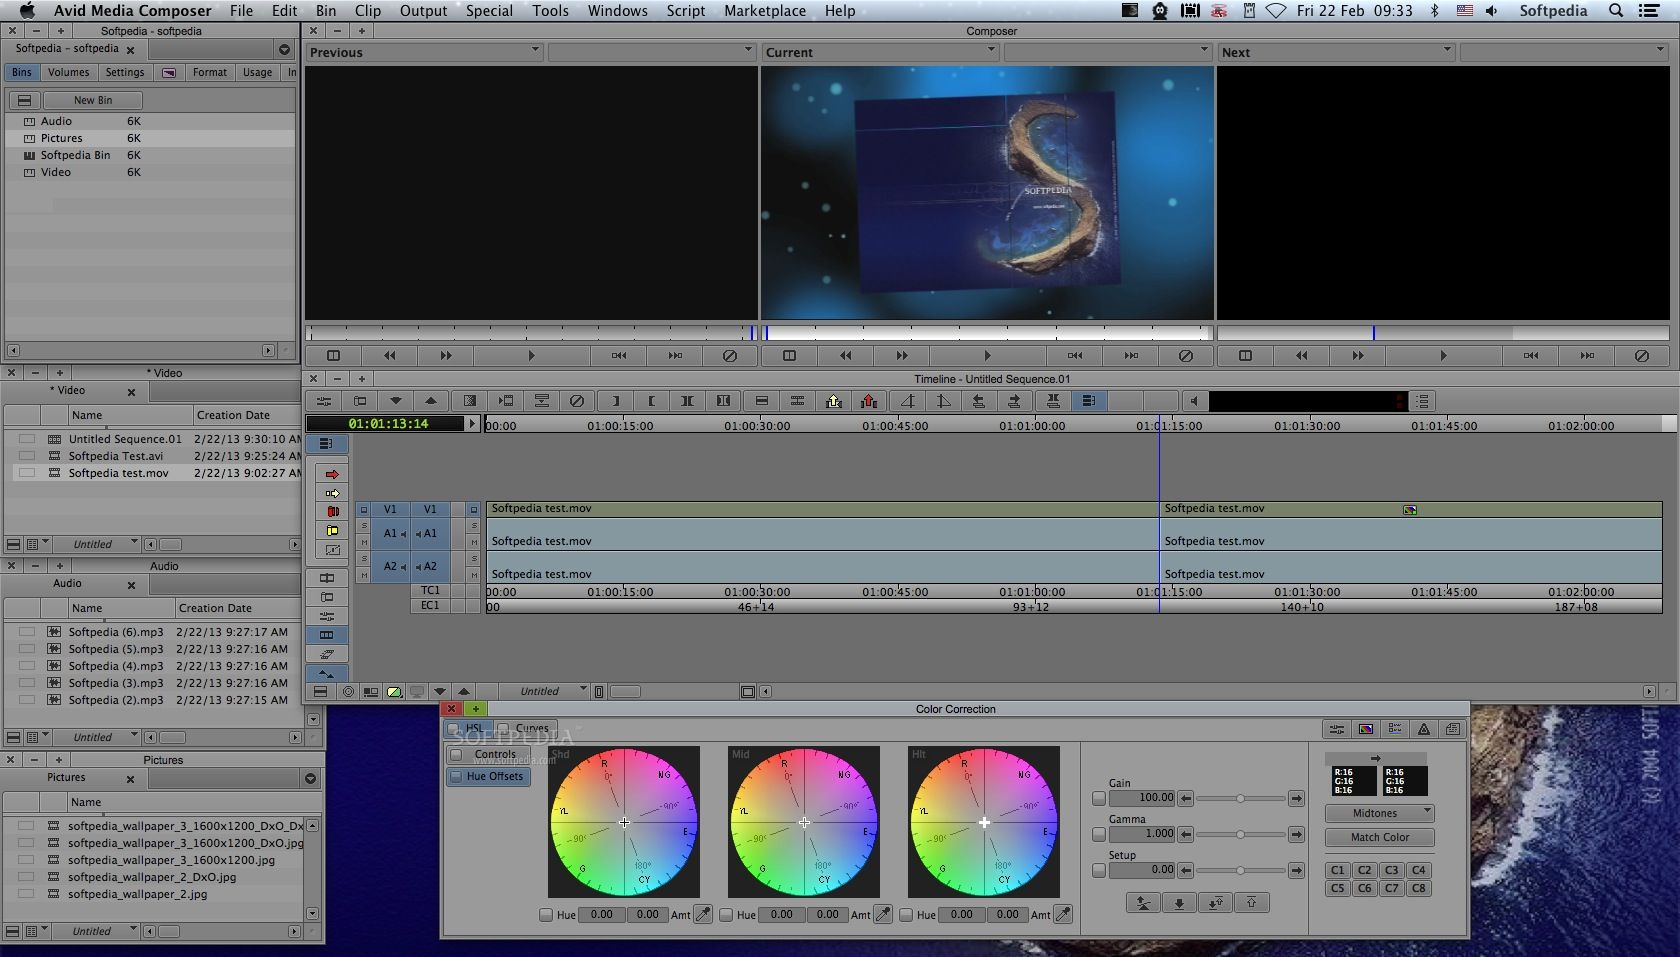 Media Composer screenshot 2 - The Color Correction window helps you correct the color of videos and images in order to be in tone with your video project's overall theme.